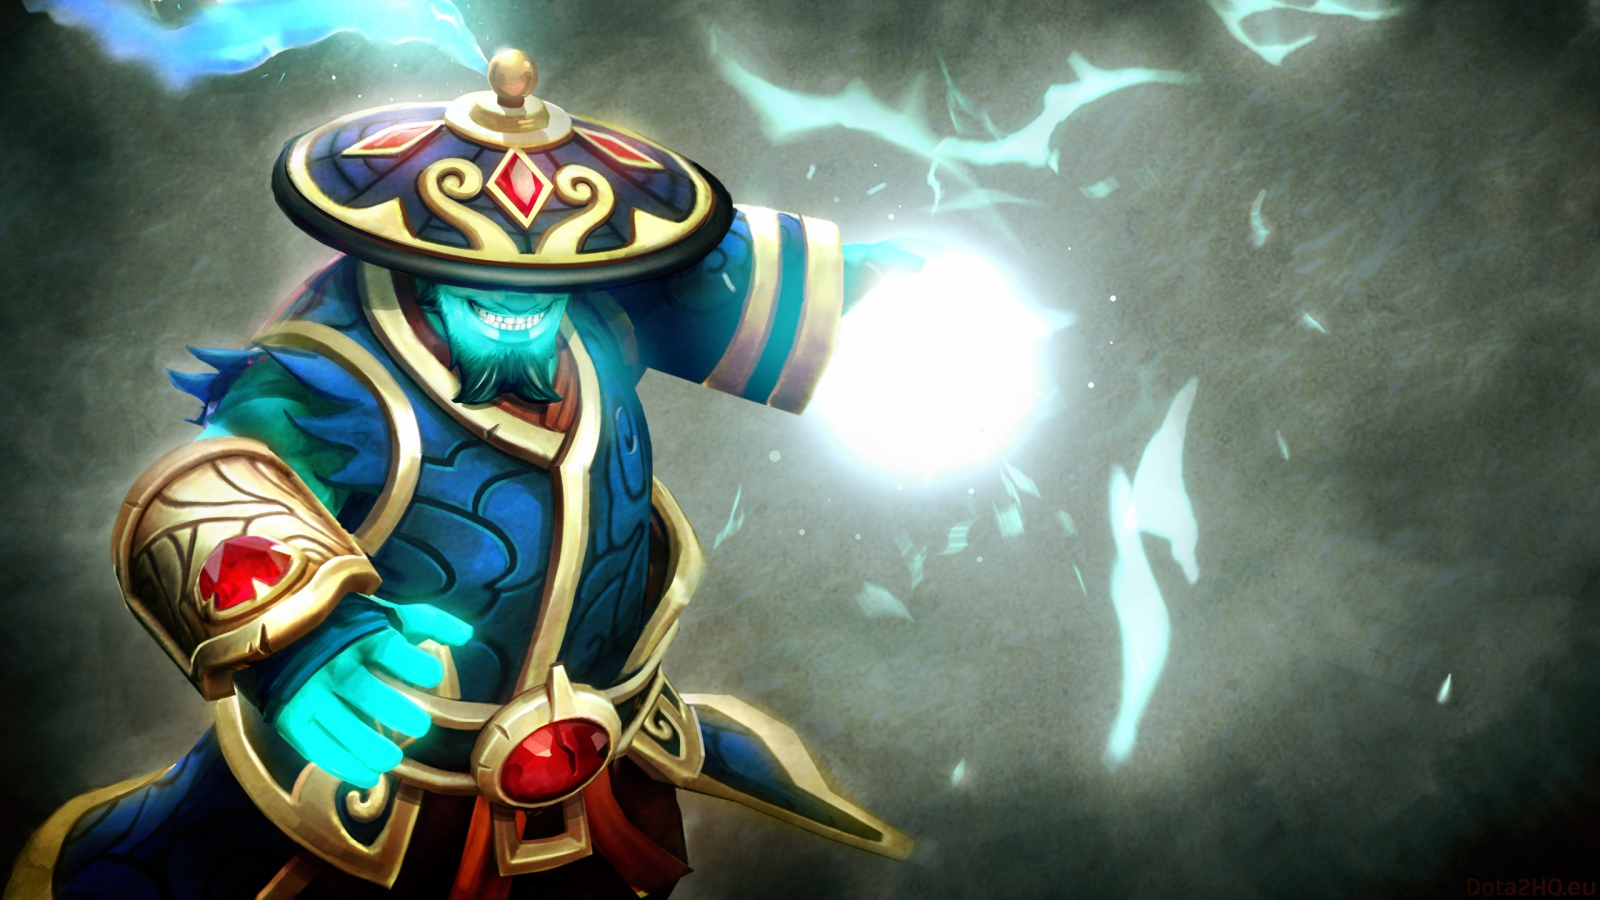 Wallpaper 1600x900 Dota 2 Storm spirit Gifts of fortune set 1600x900 1600x900